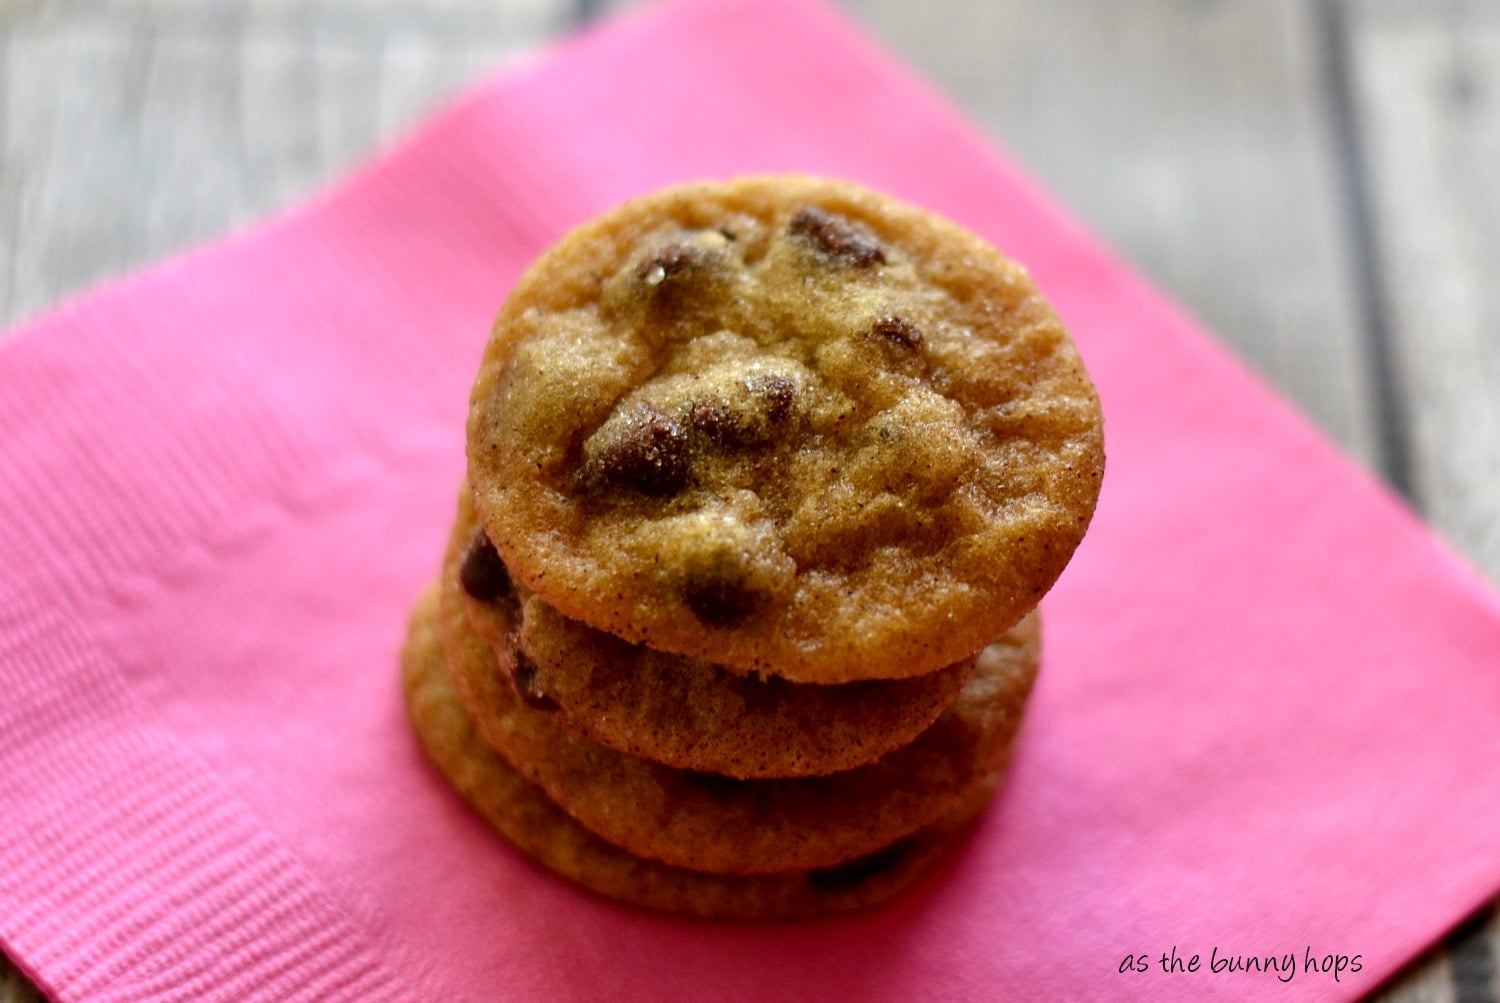 ... enjoying almost homemade chocolate chip snickerdoodles! Easy, right